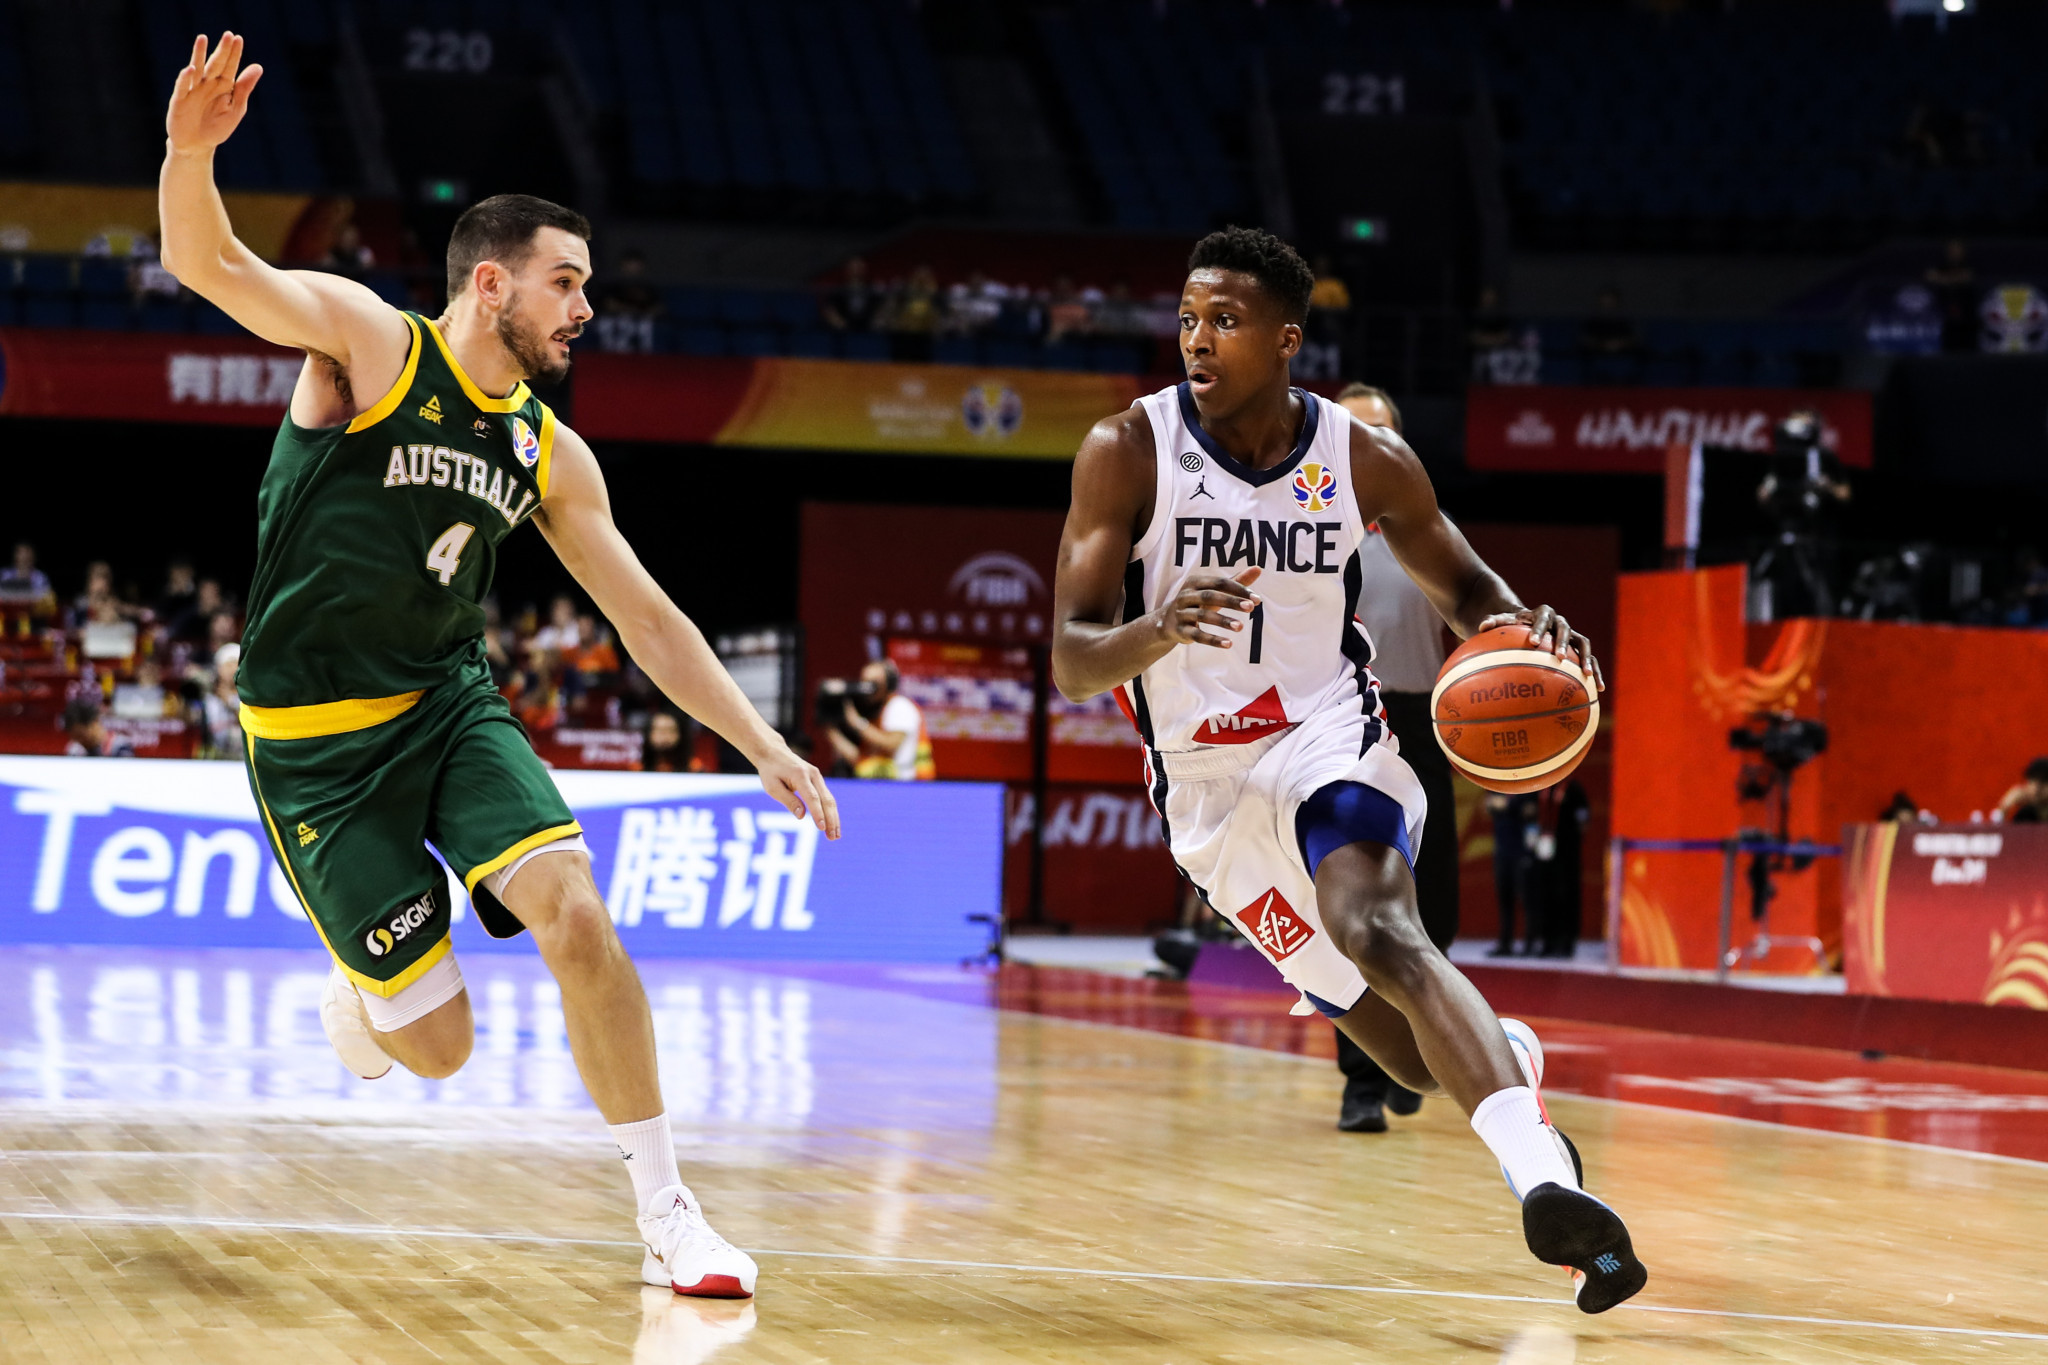 Australia and United States top second round groups at FIBA World Cup